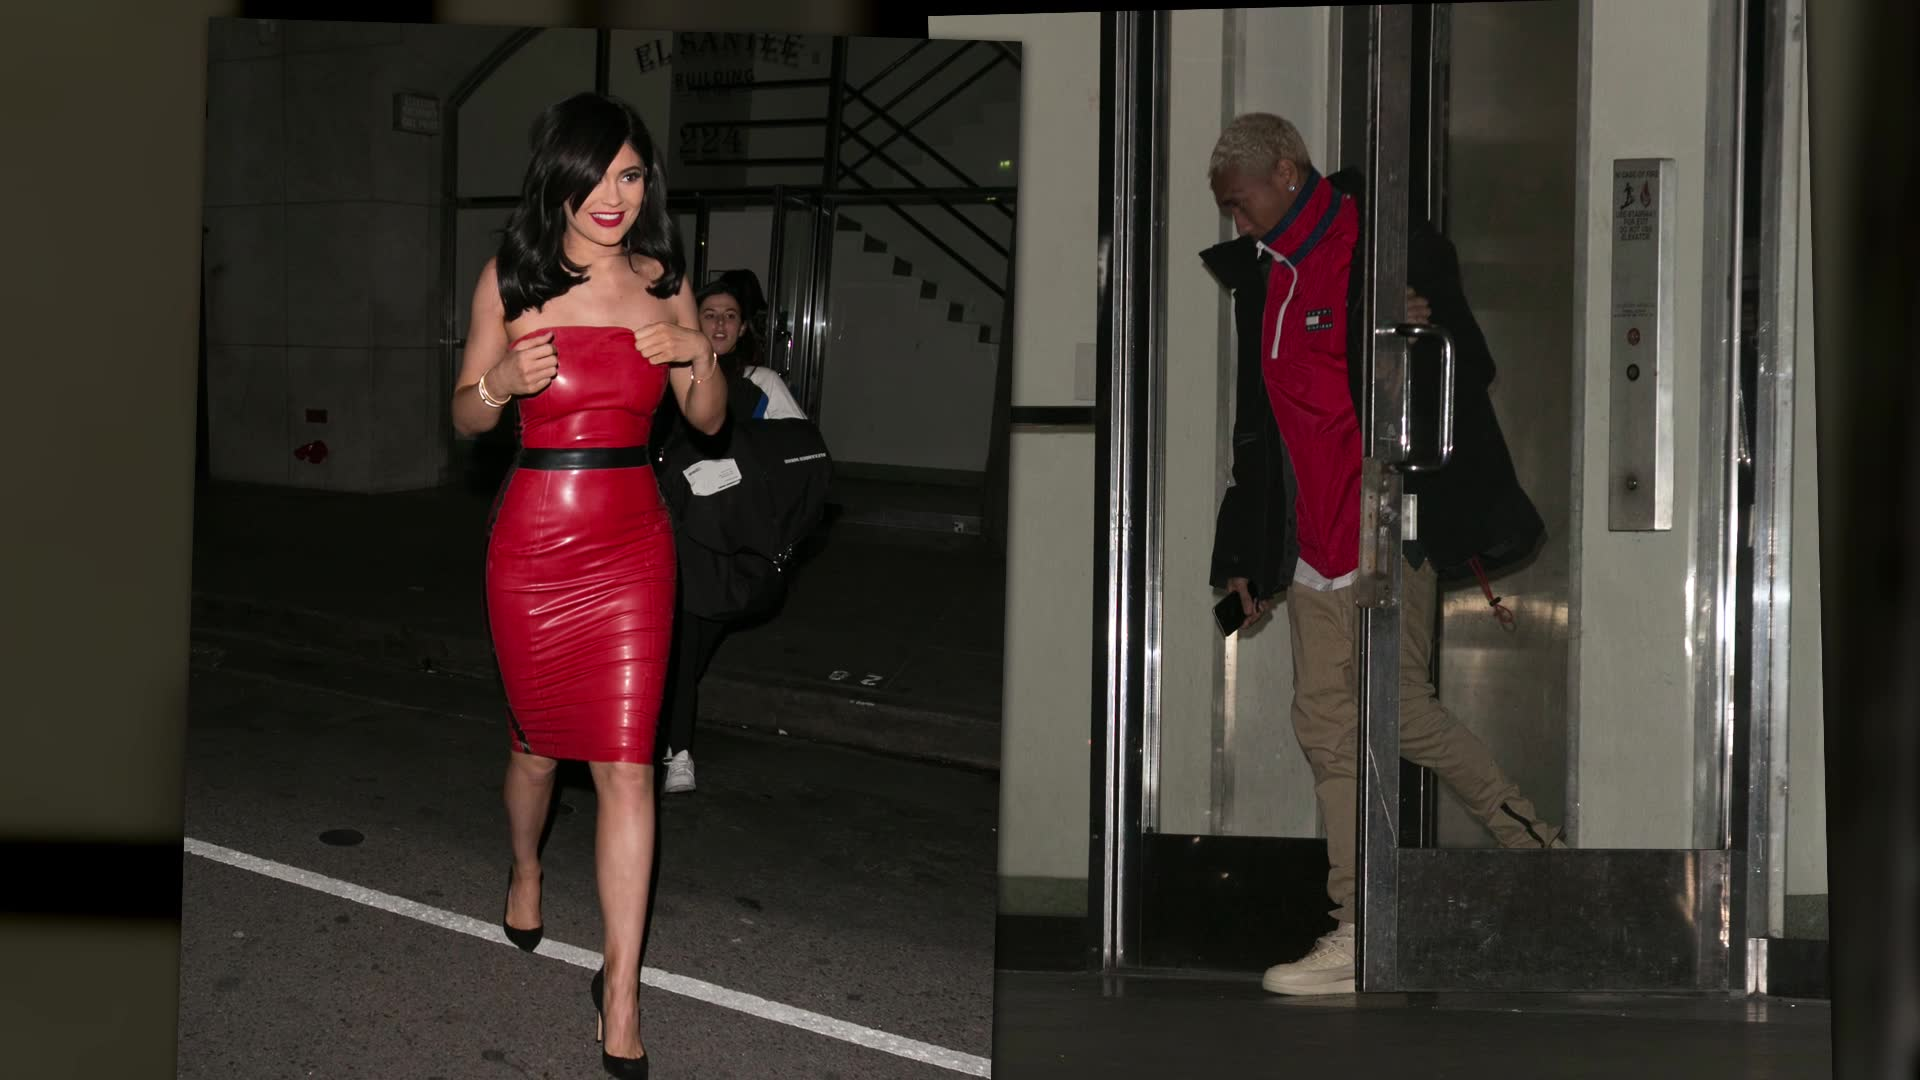 Kylie Jenner Confirms She Expects to Marry Tyga in Red Hot Dress